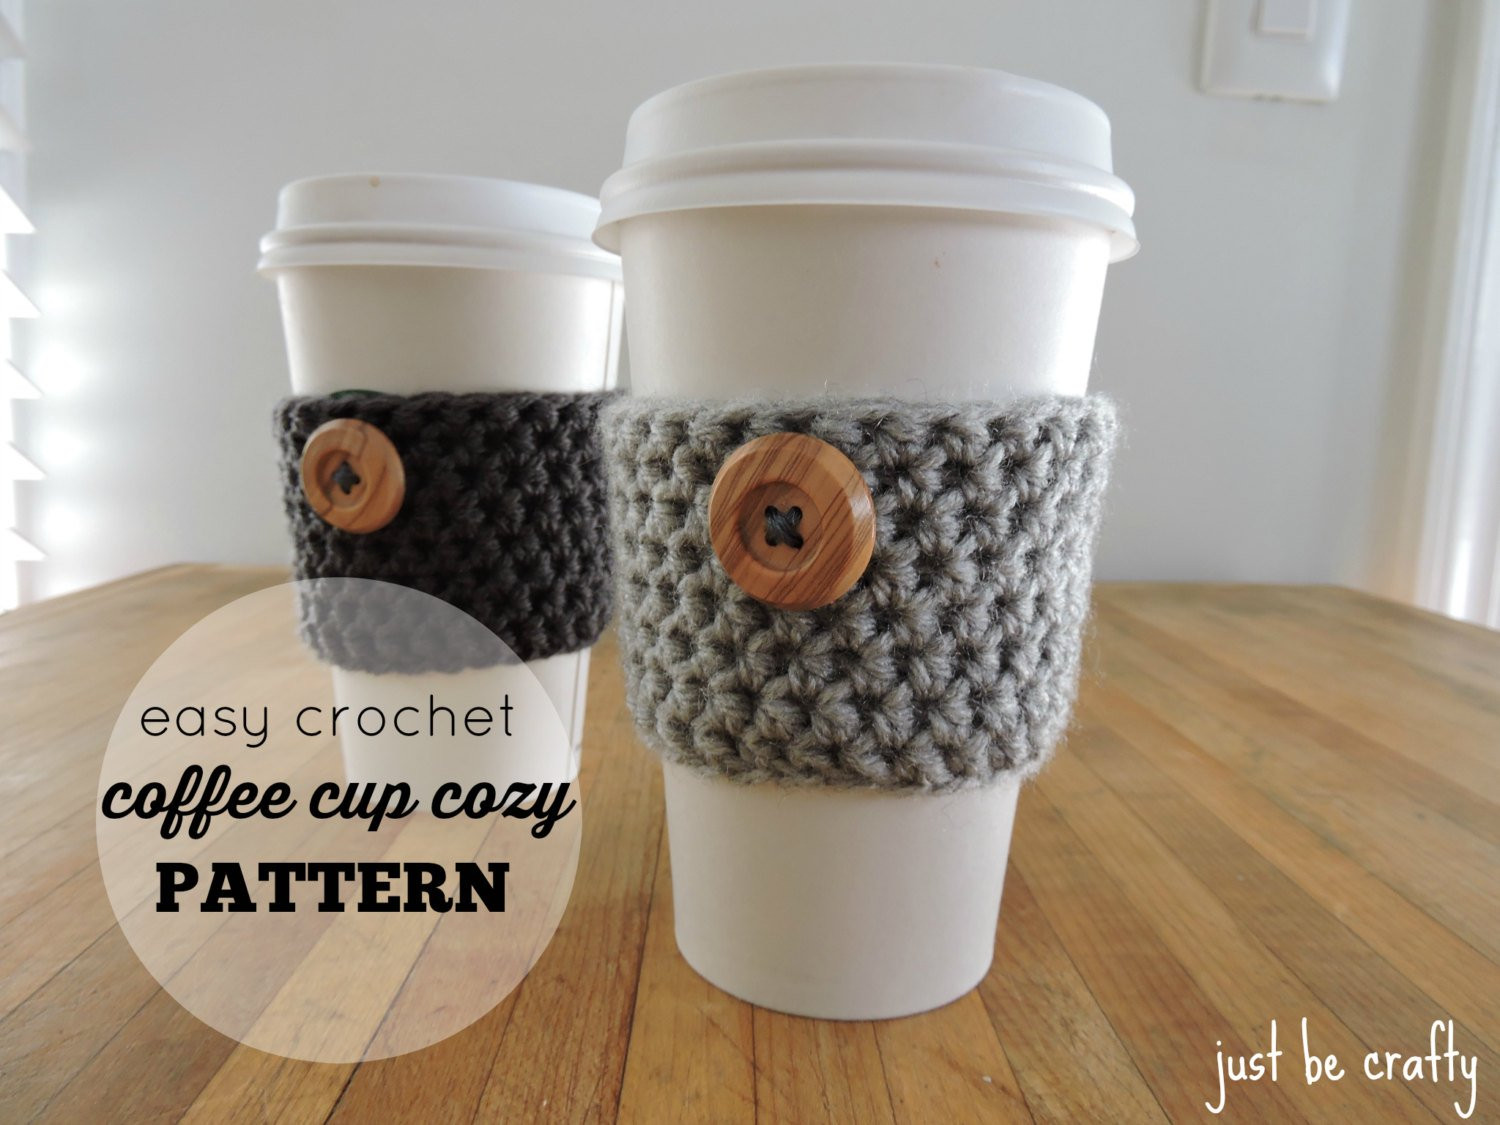 Crochet Coffee Cup Cozy Inspirational Crochet Coffee Cup Cozy Pattern Pdf Download Coffee Cup Cozy Of Crochet Coffee Cup Cozy Unique Mrsbrits Ribbed Coffee Cozy Crochet Pattern